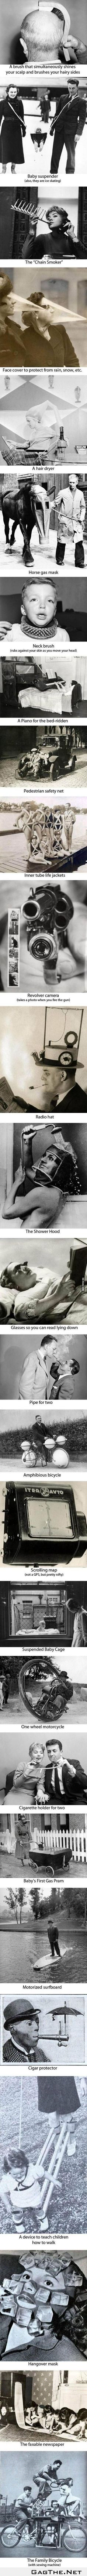 27 crazy inventions from the past